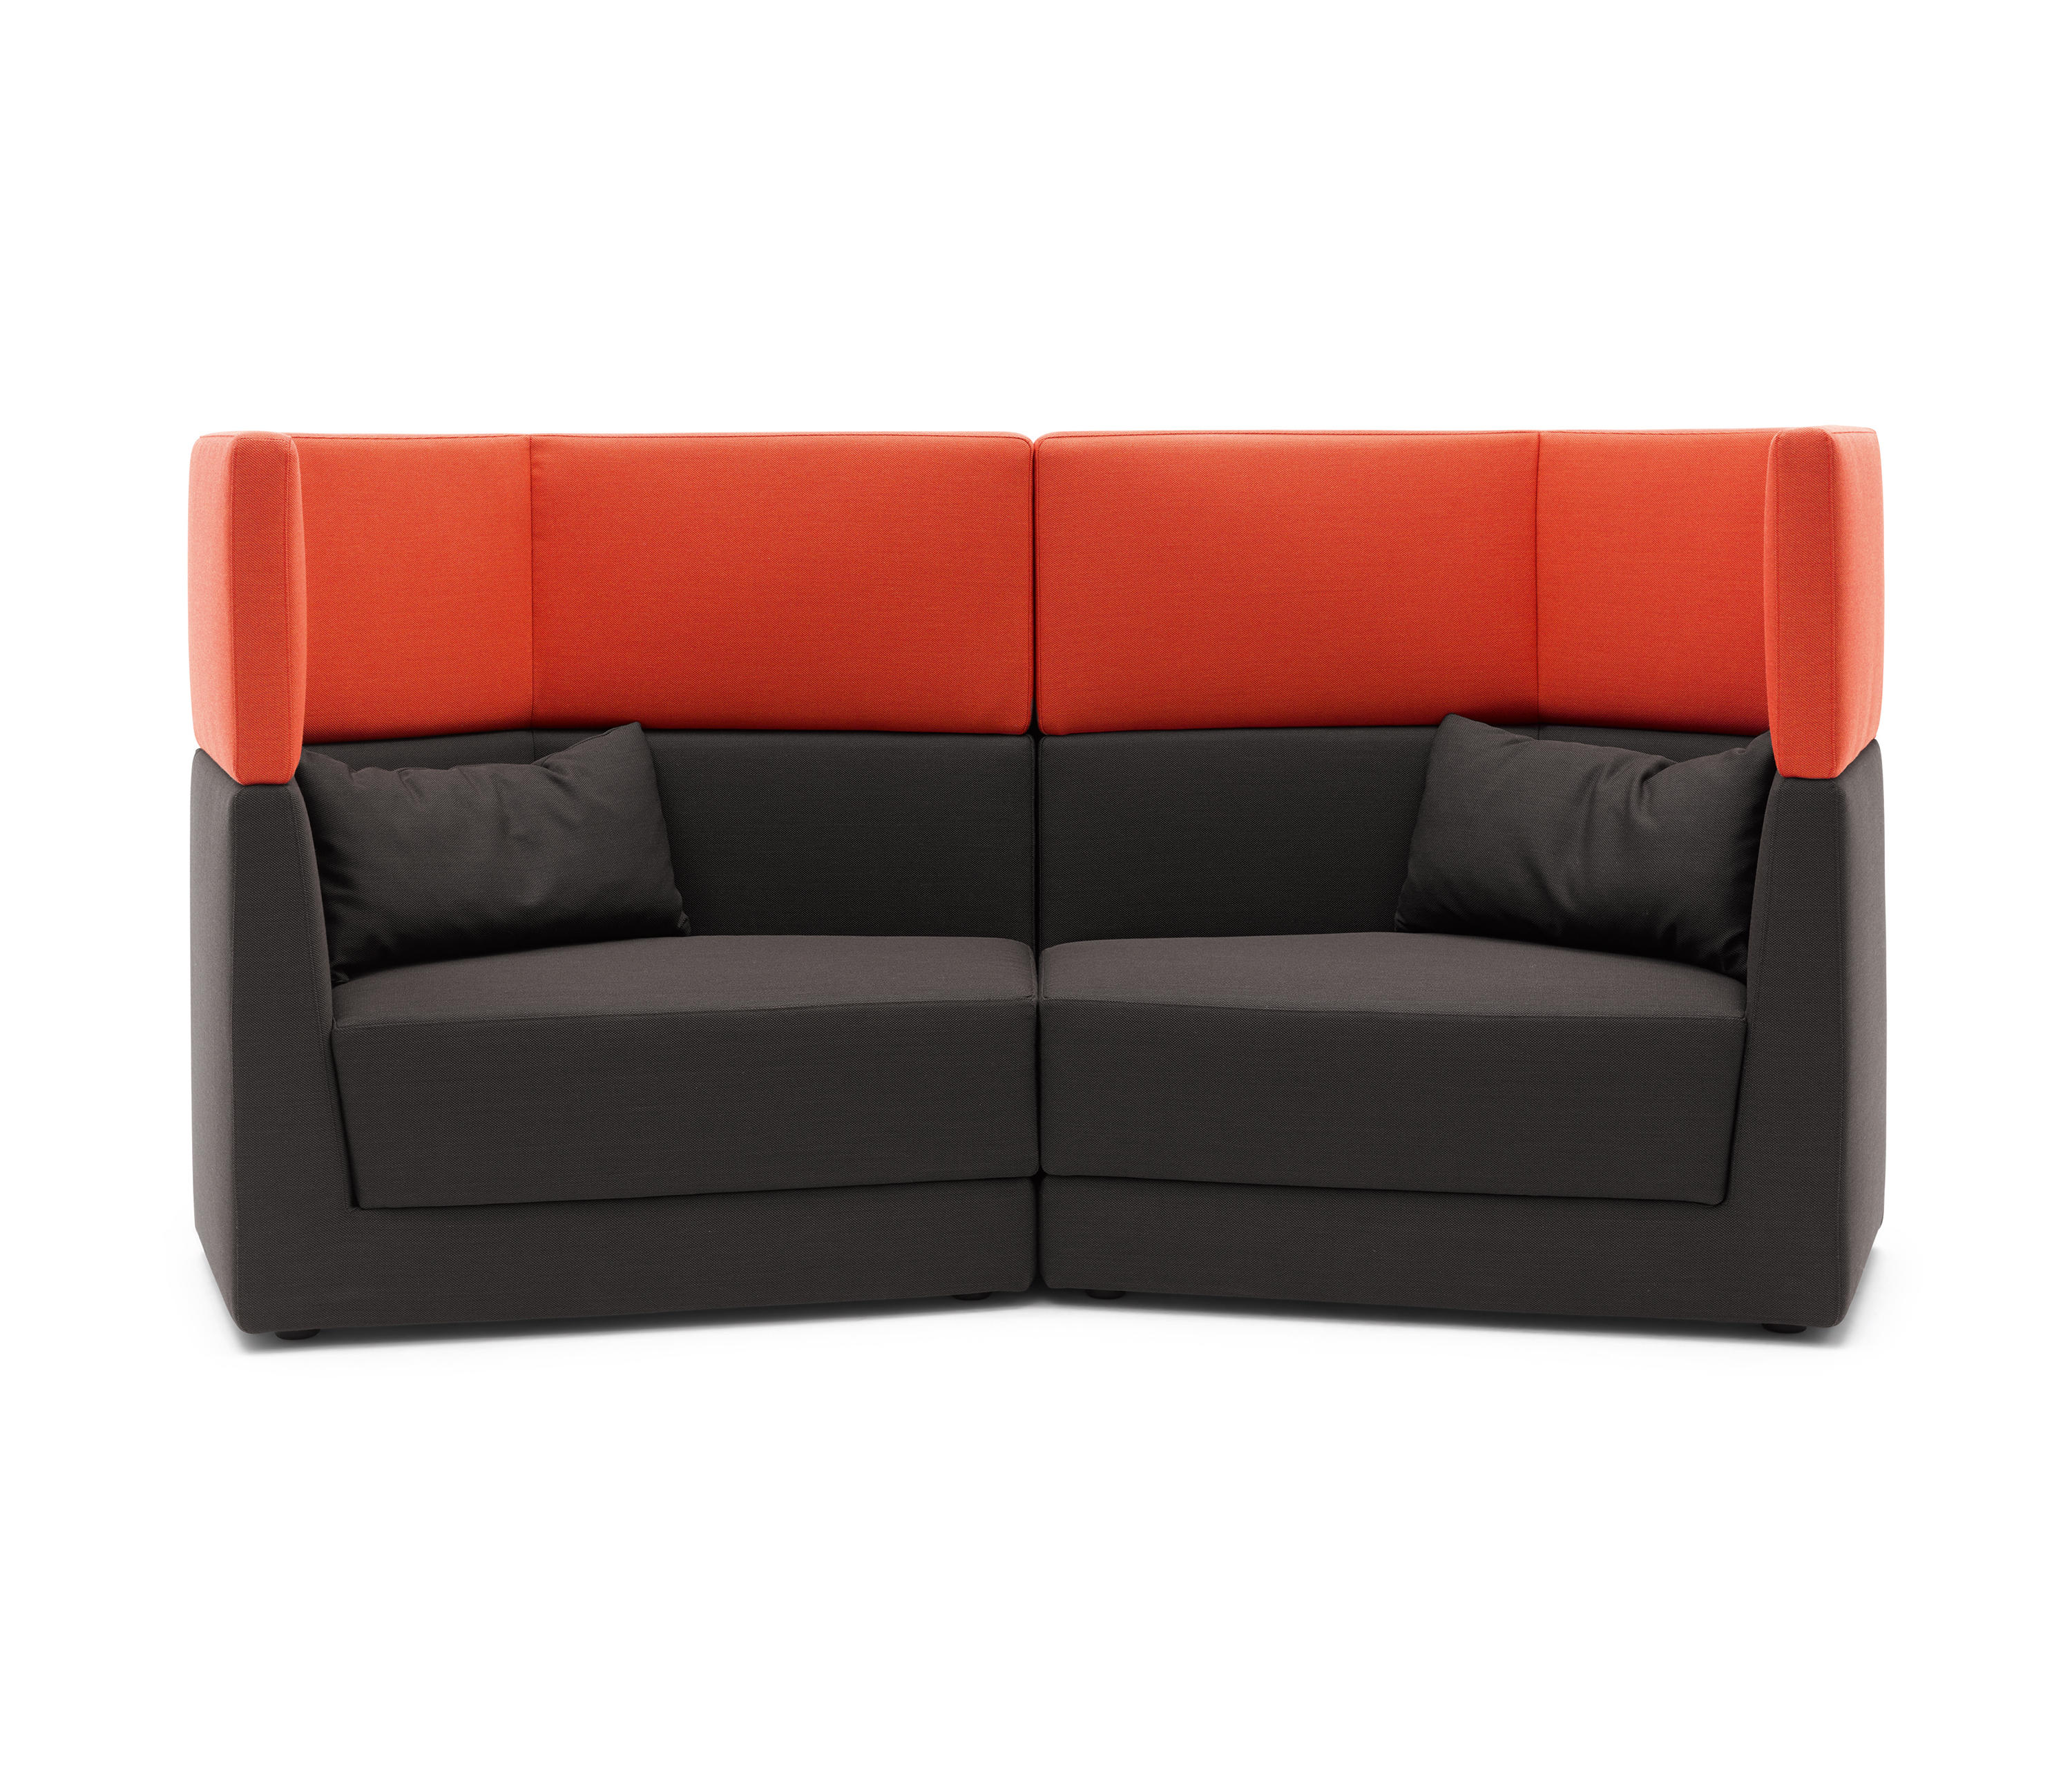 scope sofa lounge sofas from cor architonic. Black Bedroom Furniture Sets. Home Design Ideas